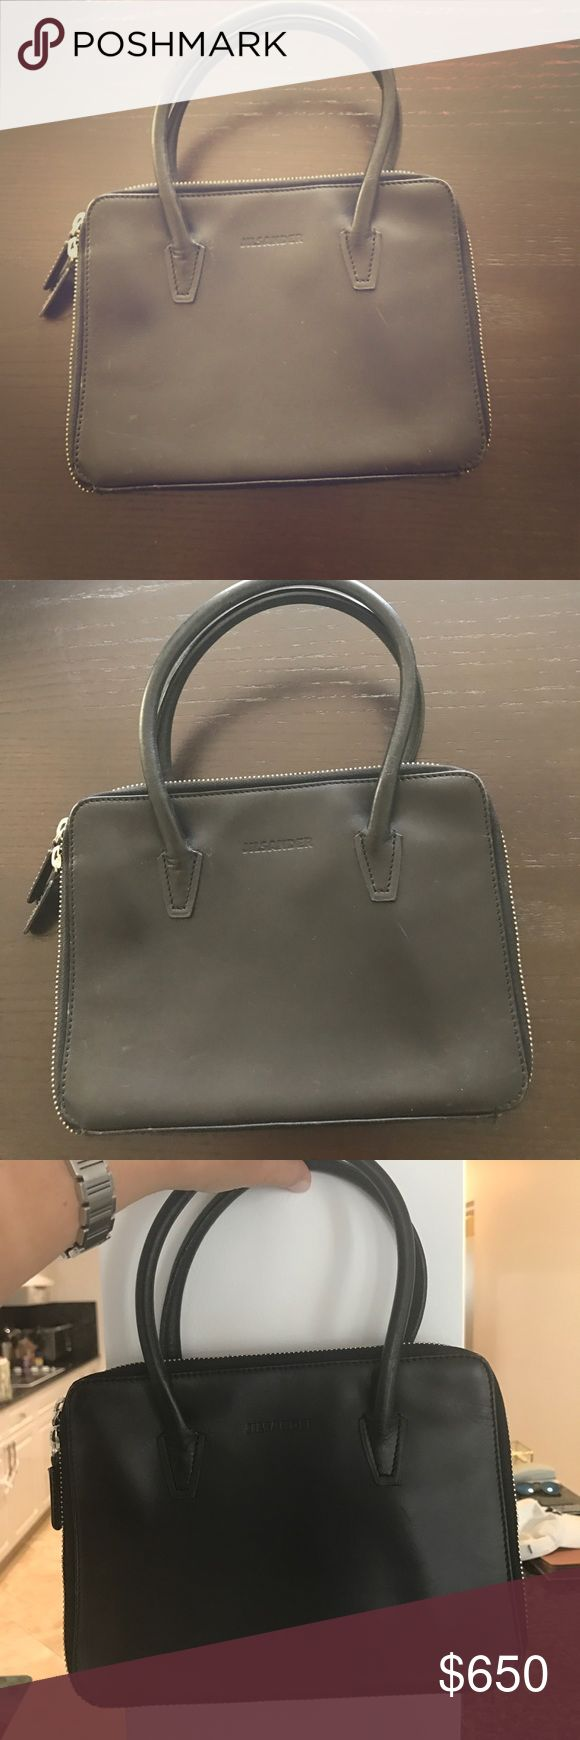 Jill sander leather evening bag This super cool evening bag is one of a kind. It's ultra cool flat look dresses up any outfit for a night out. Great, durable leather. Super cool handle that fits on wrist for a sophisticated look. Zip around closure. Jill Sander Bags Mini Bags